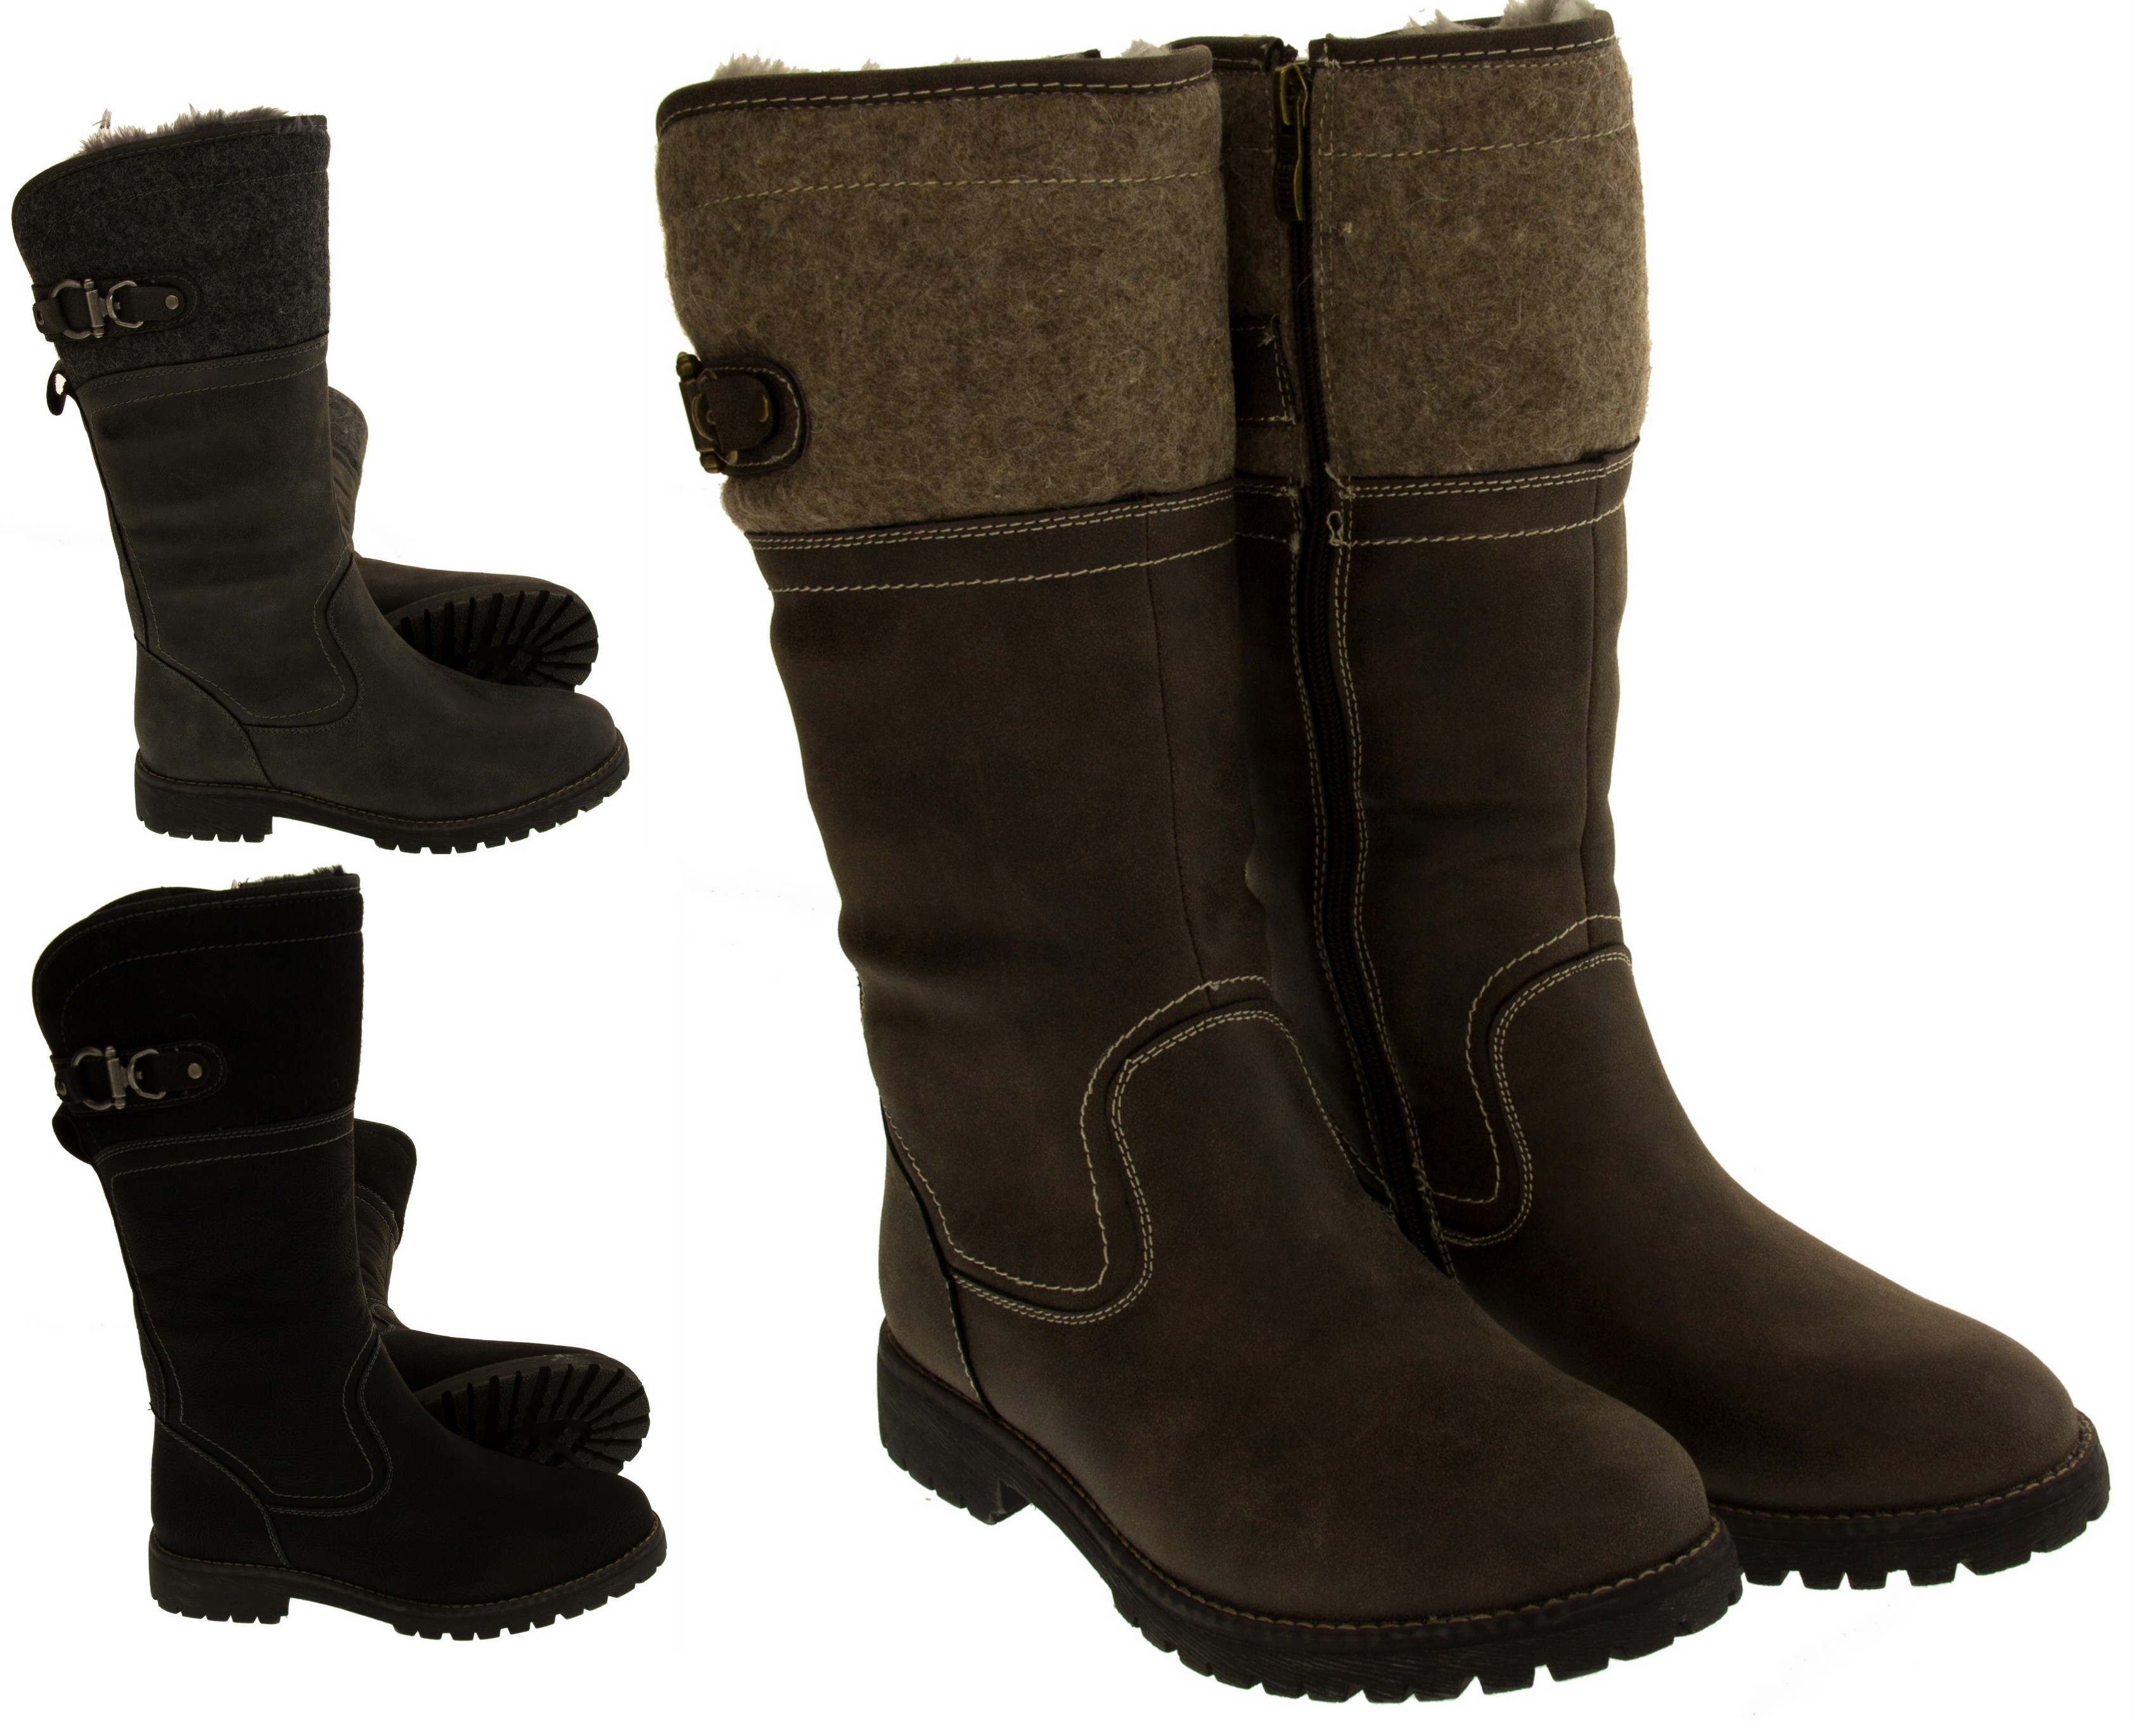 Womens Keddo Mid Calf Faux Leather Boots Ladies Warm ...